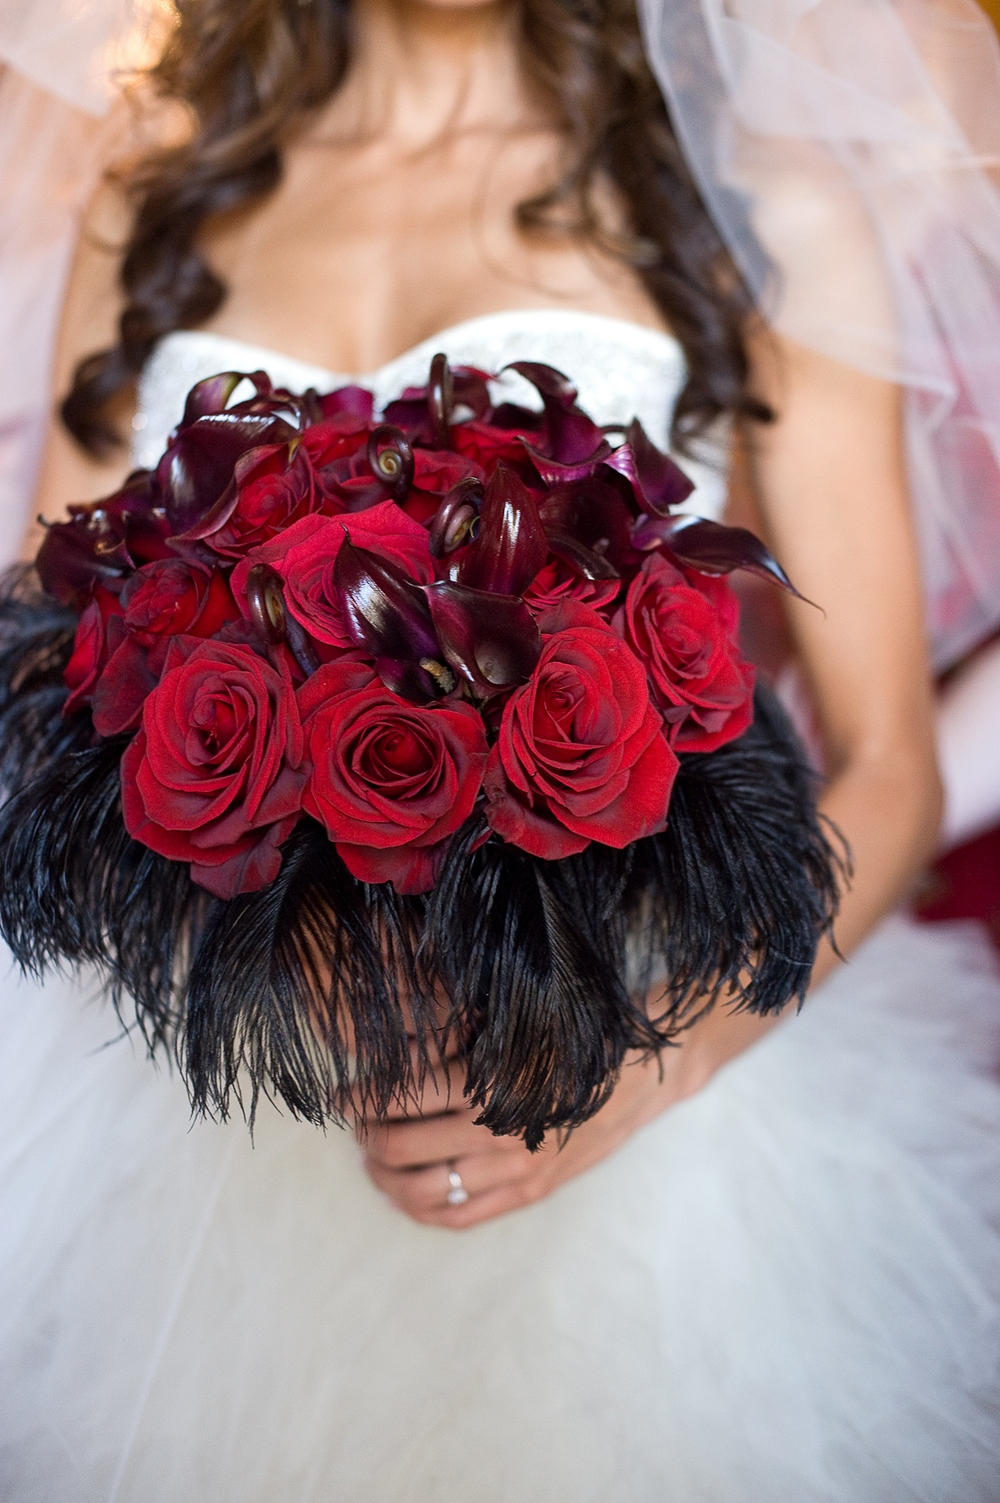 Wedding Bouquets Red And Black : Bride s statement bridal bouquet created with deep red